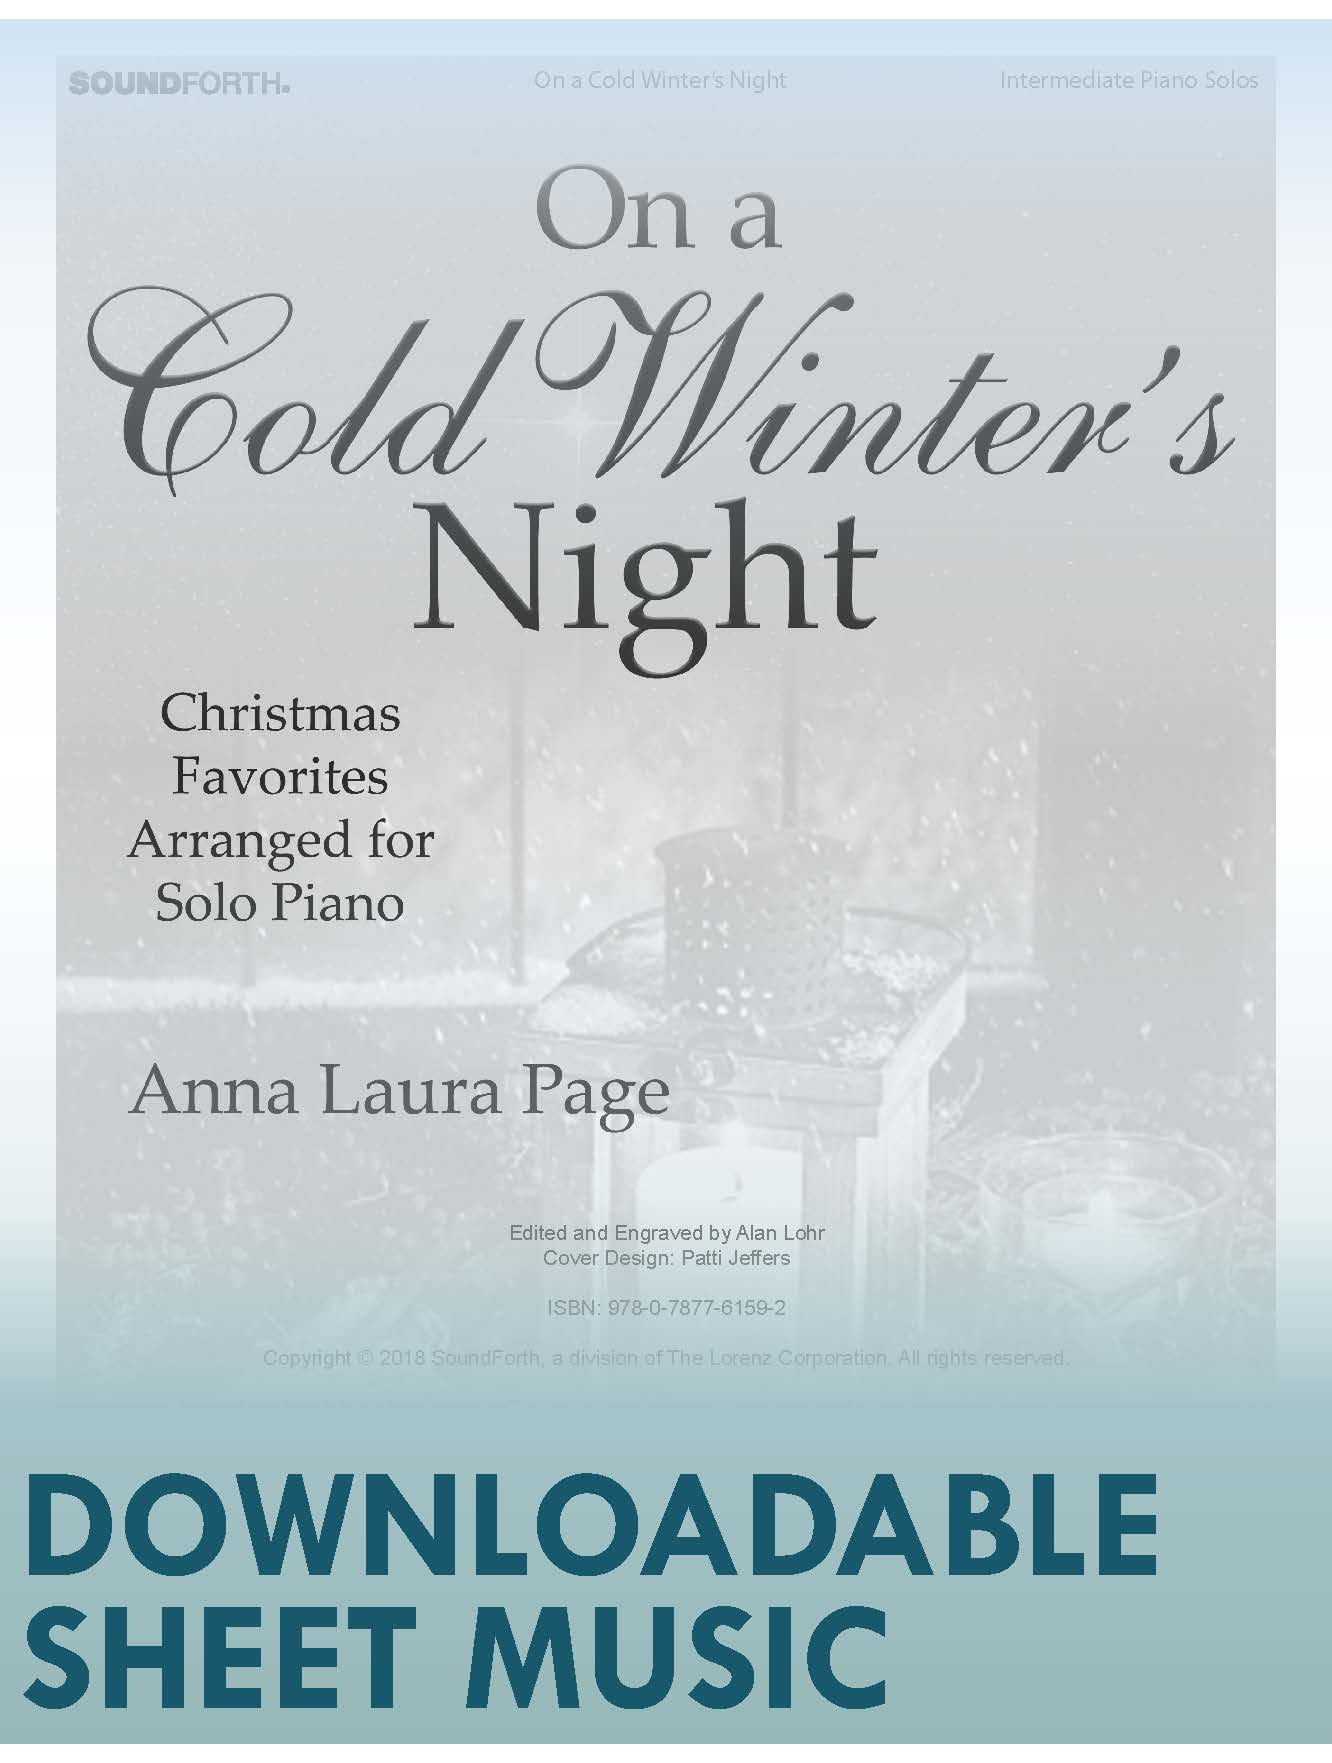 On a Cold Winter's Night - Digital Download